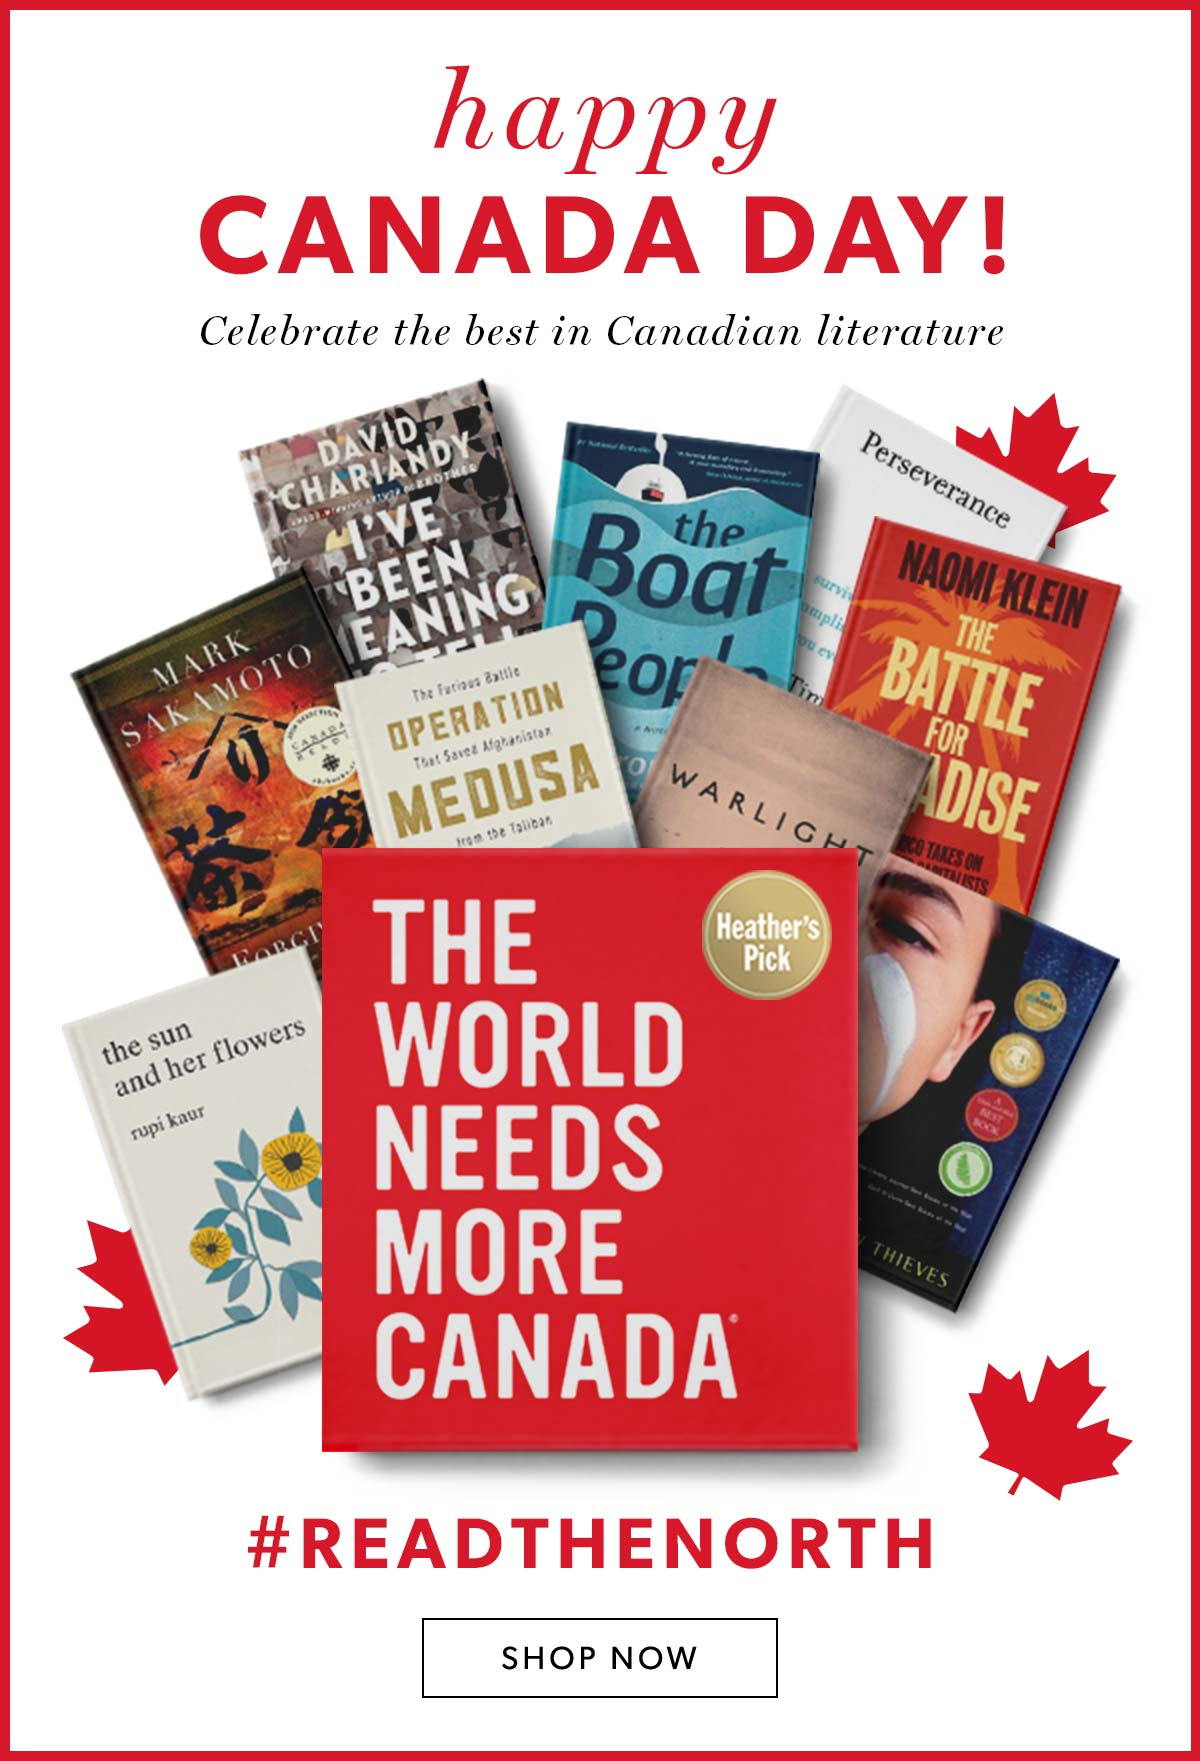 Happy Canada Day! Celebrate the best in Canadian Literature